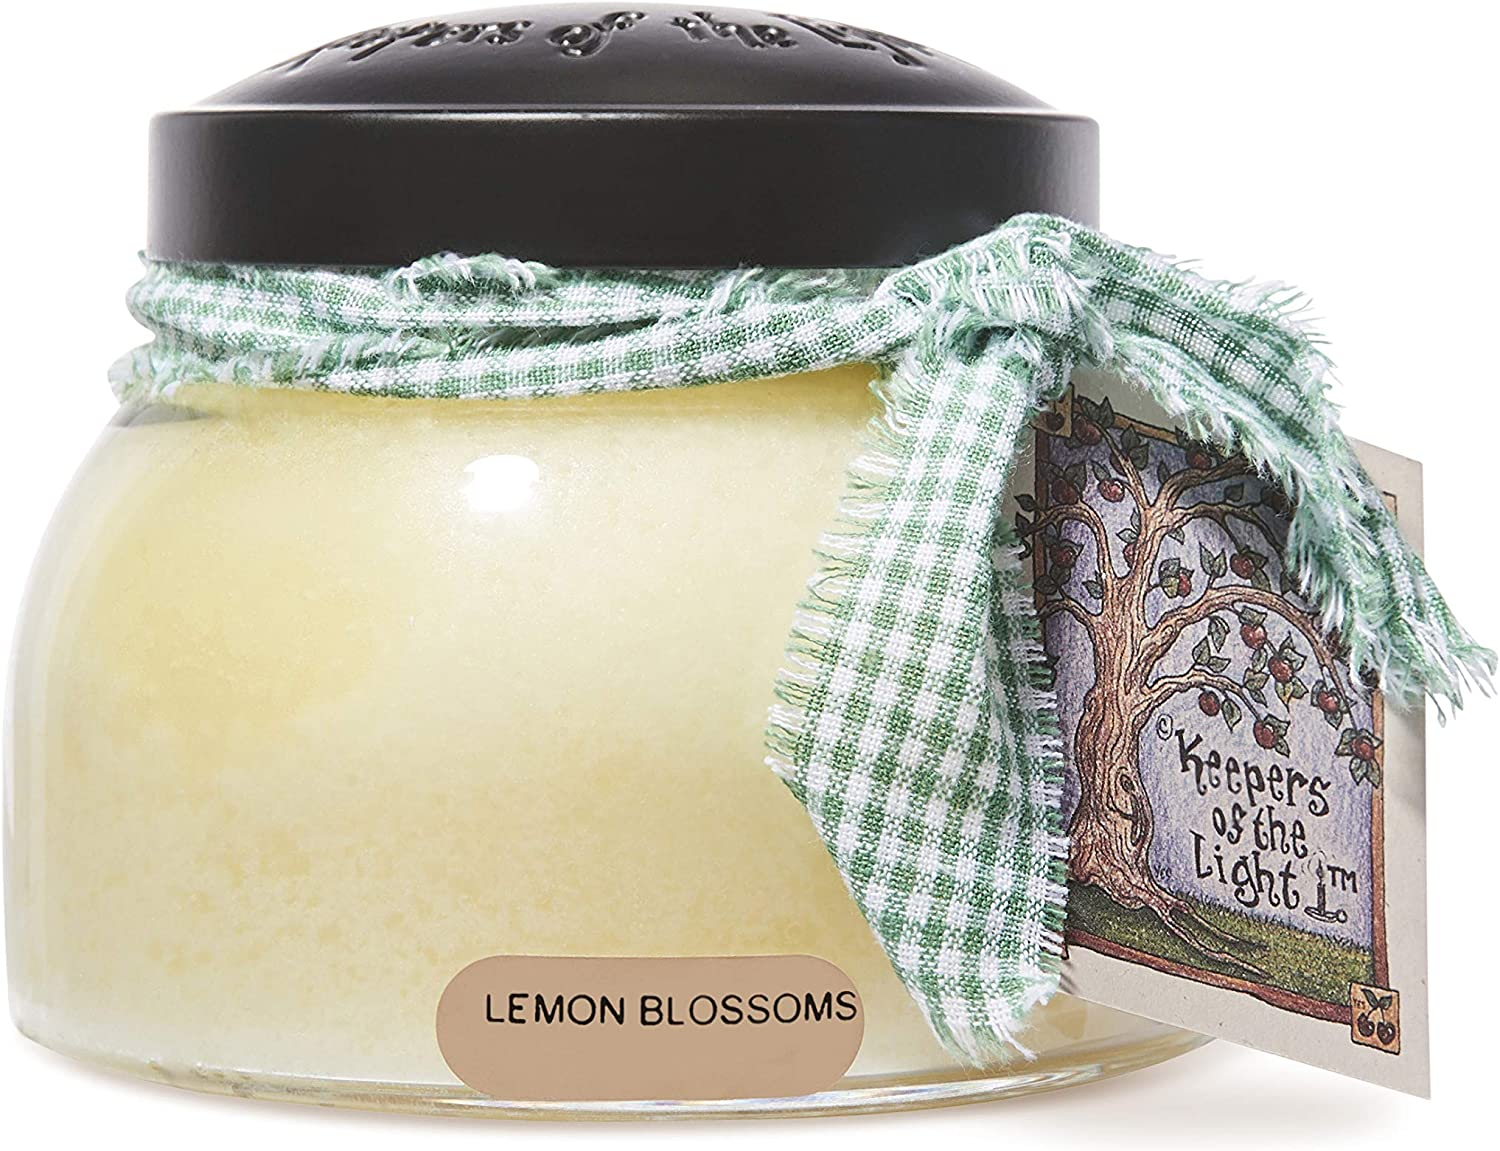 Scented Glass Jar Candle - 22 oz. Lemon Blossoms Mama Jar Candle with Lid & True to Life Fragrance Made in USA - Keepers of the Light Collection by A Cheerful Giver